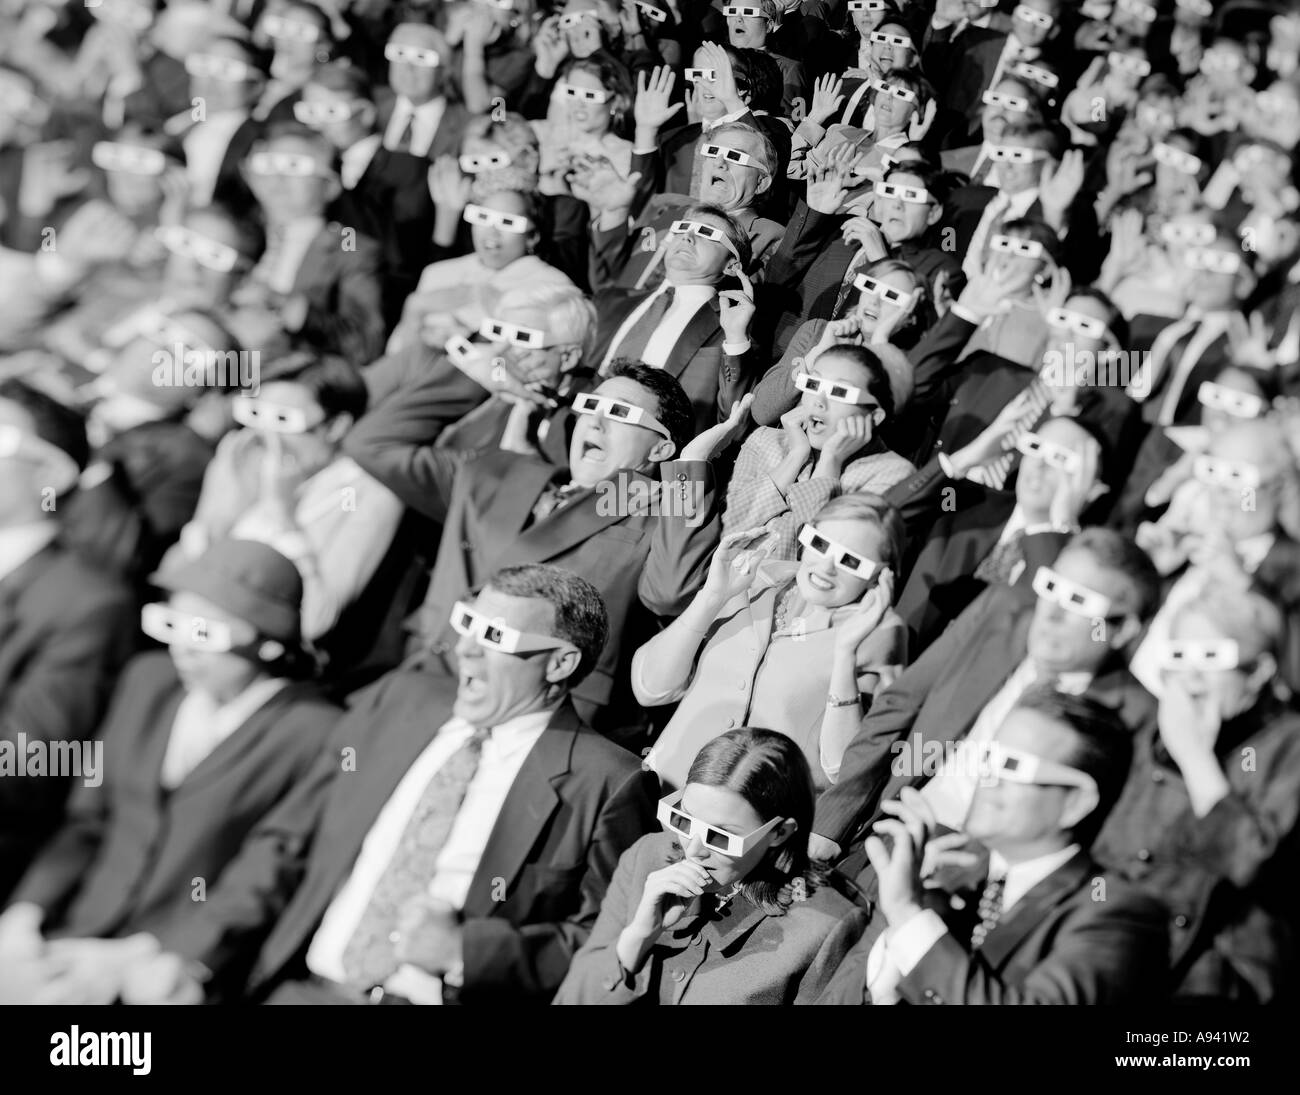 High angle view of a group of spectators sitting in a movie theater wearing 3-D glasses - Stock Image